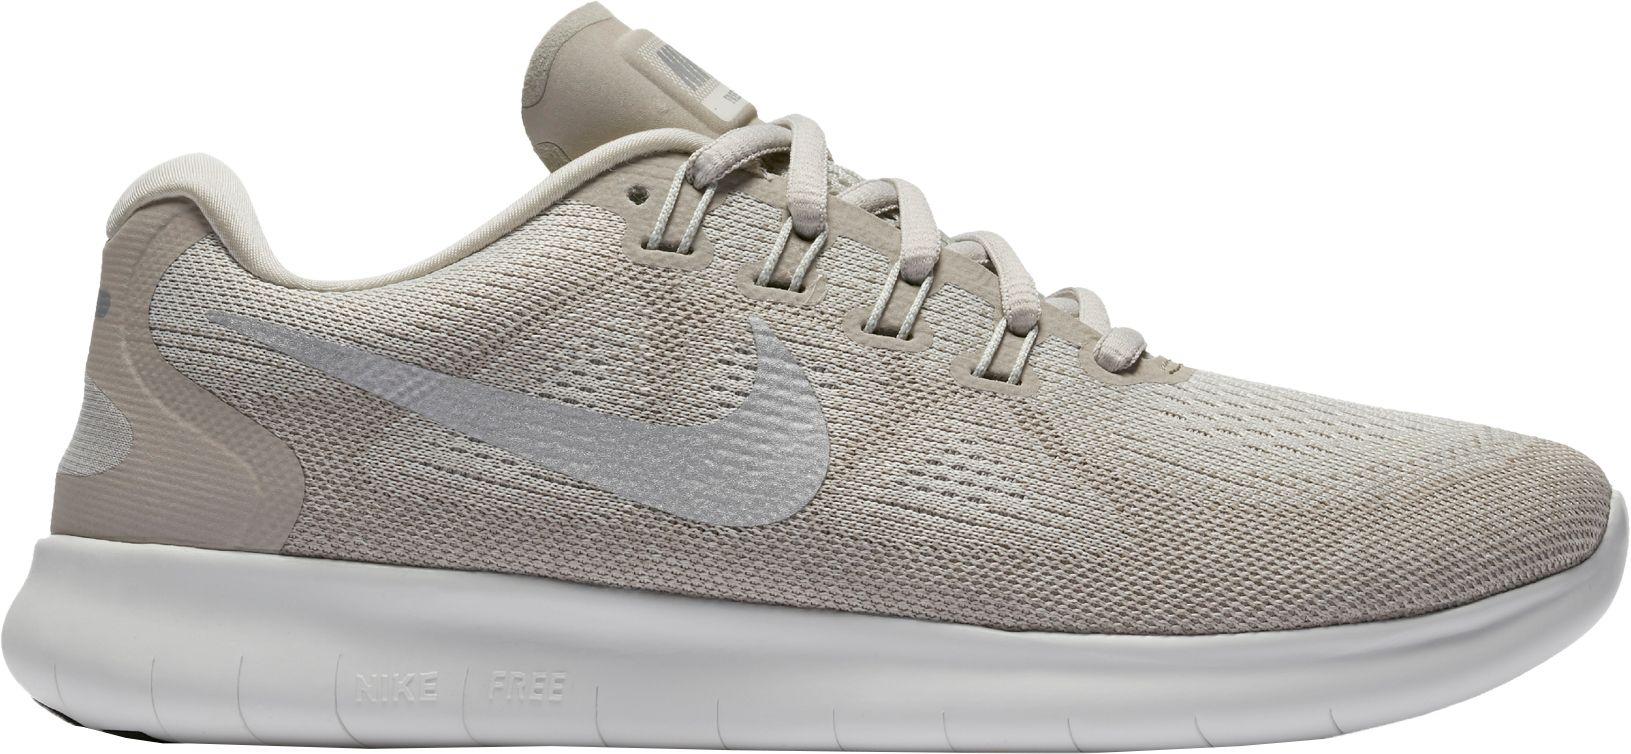 Nike WoHombres Free Rn 2017 Sporting Running Zapatos Dick' S Sporting 2017 Goods 115354